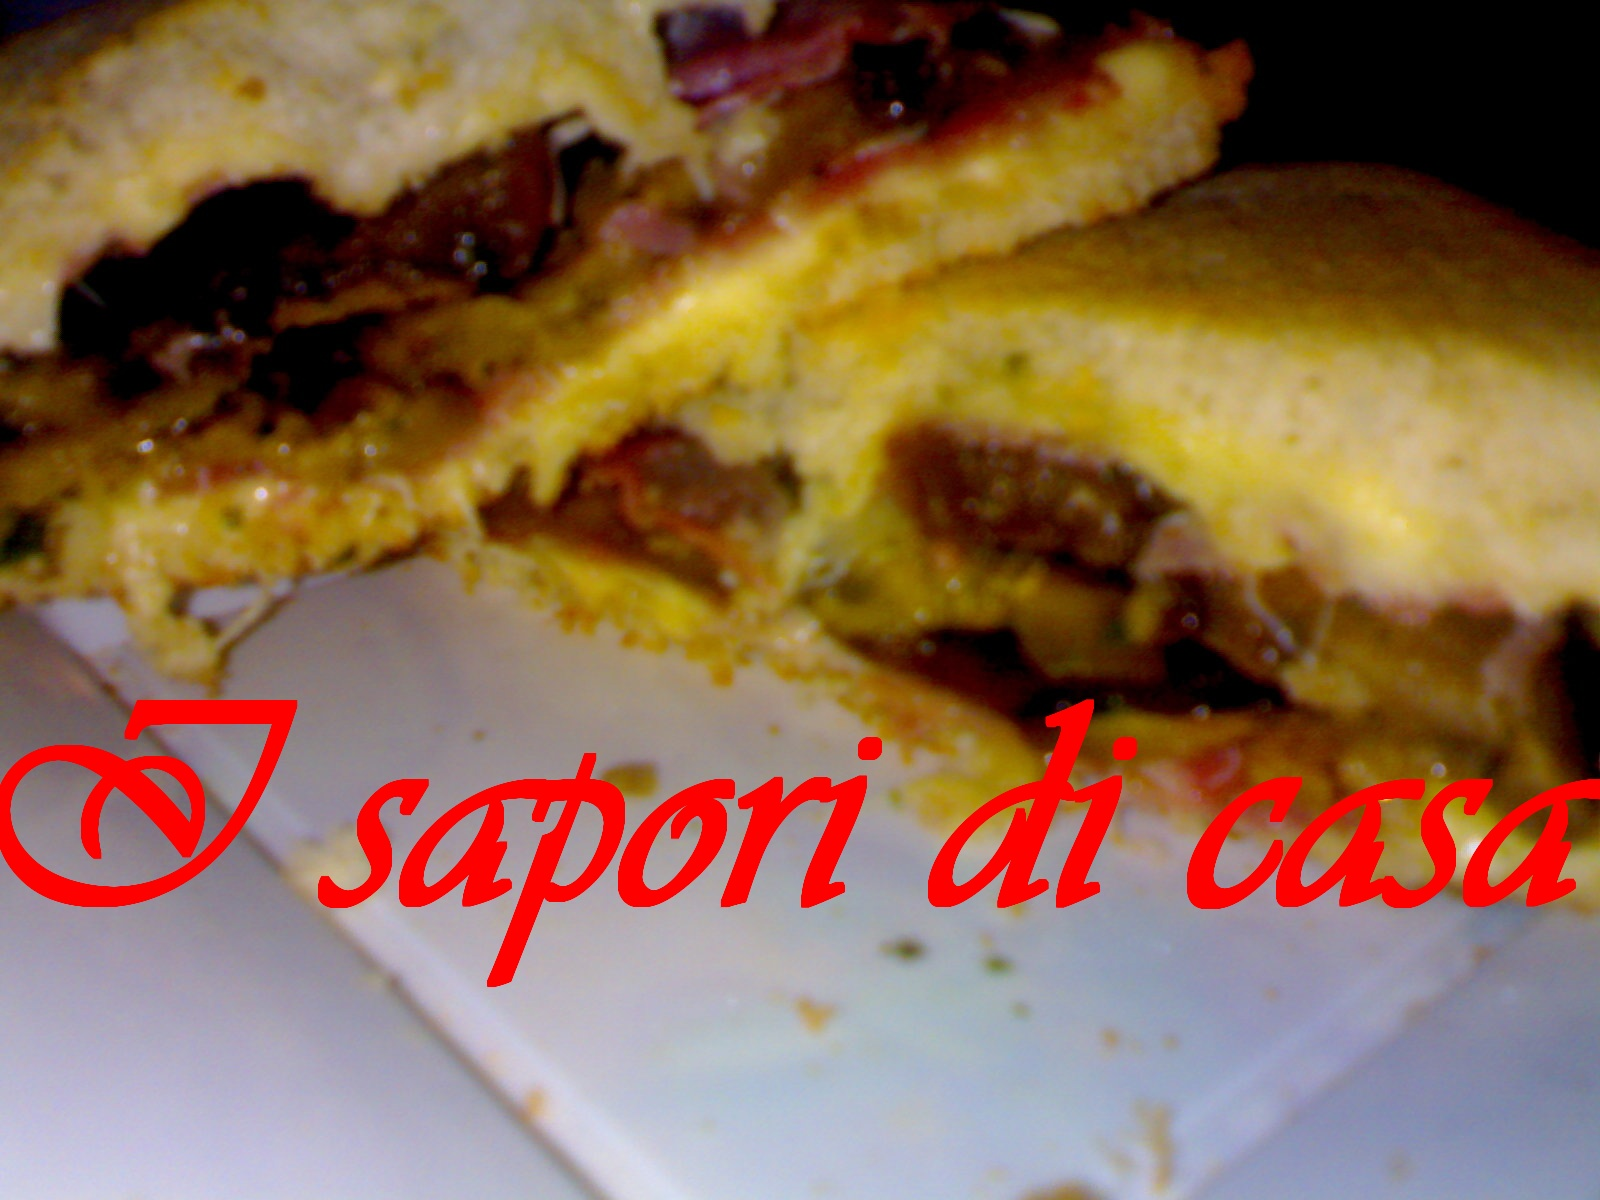 Big sandwich con melanzane e coppa